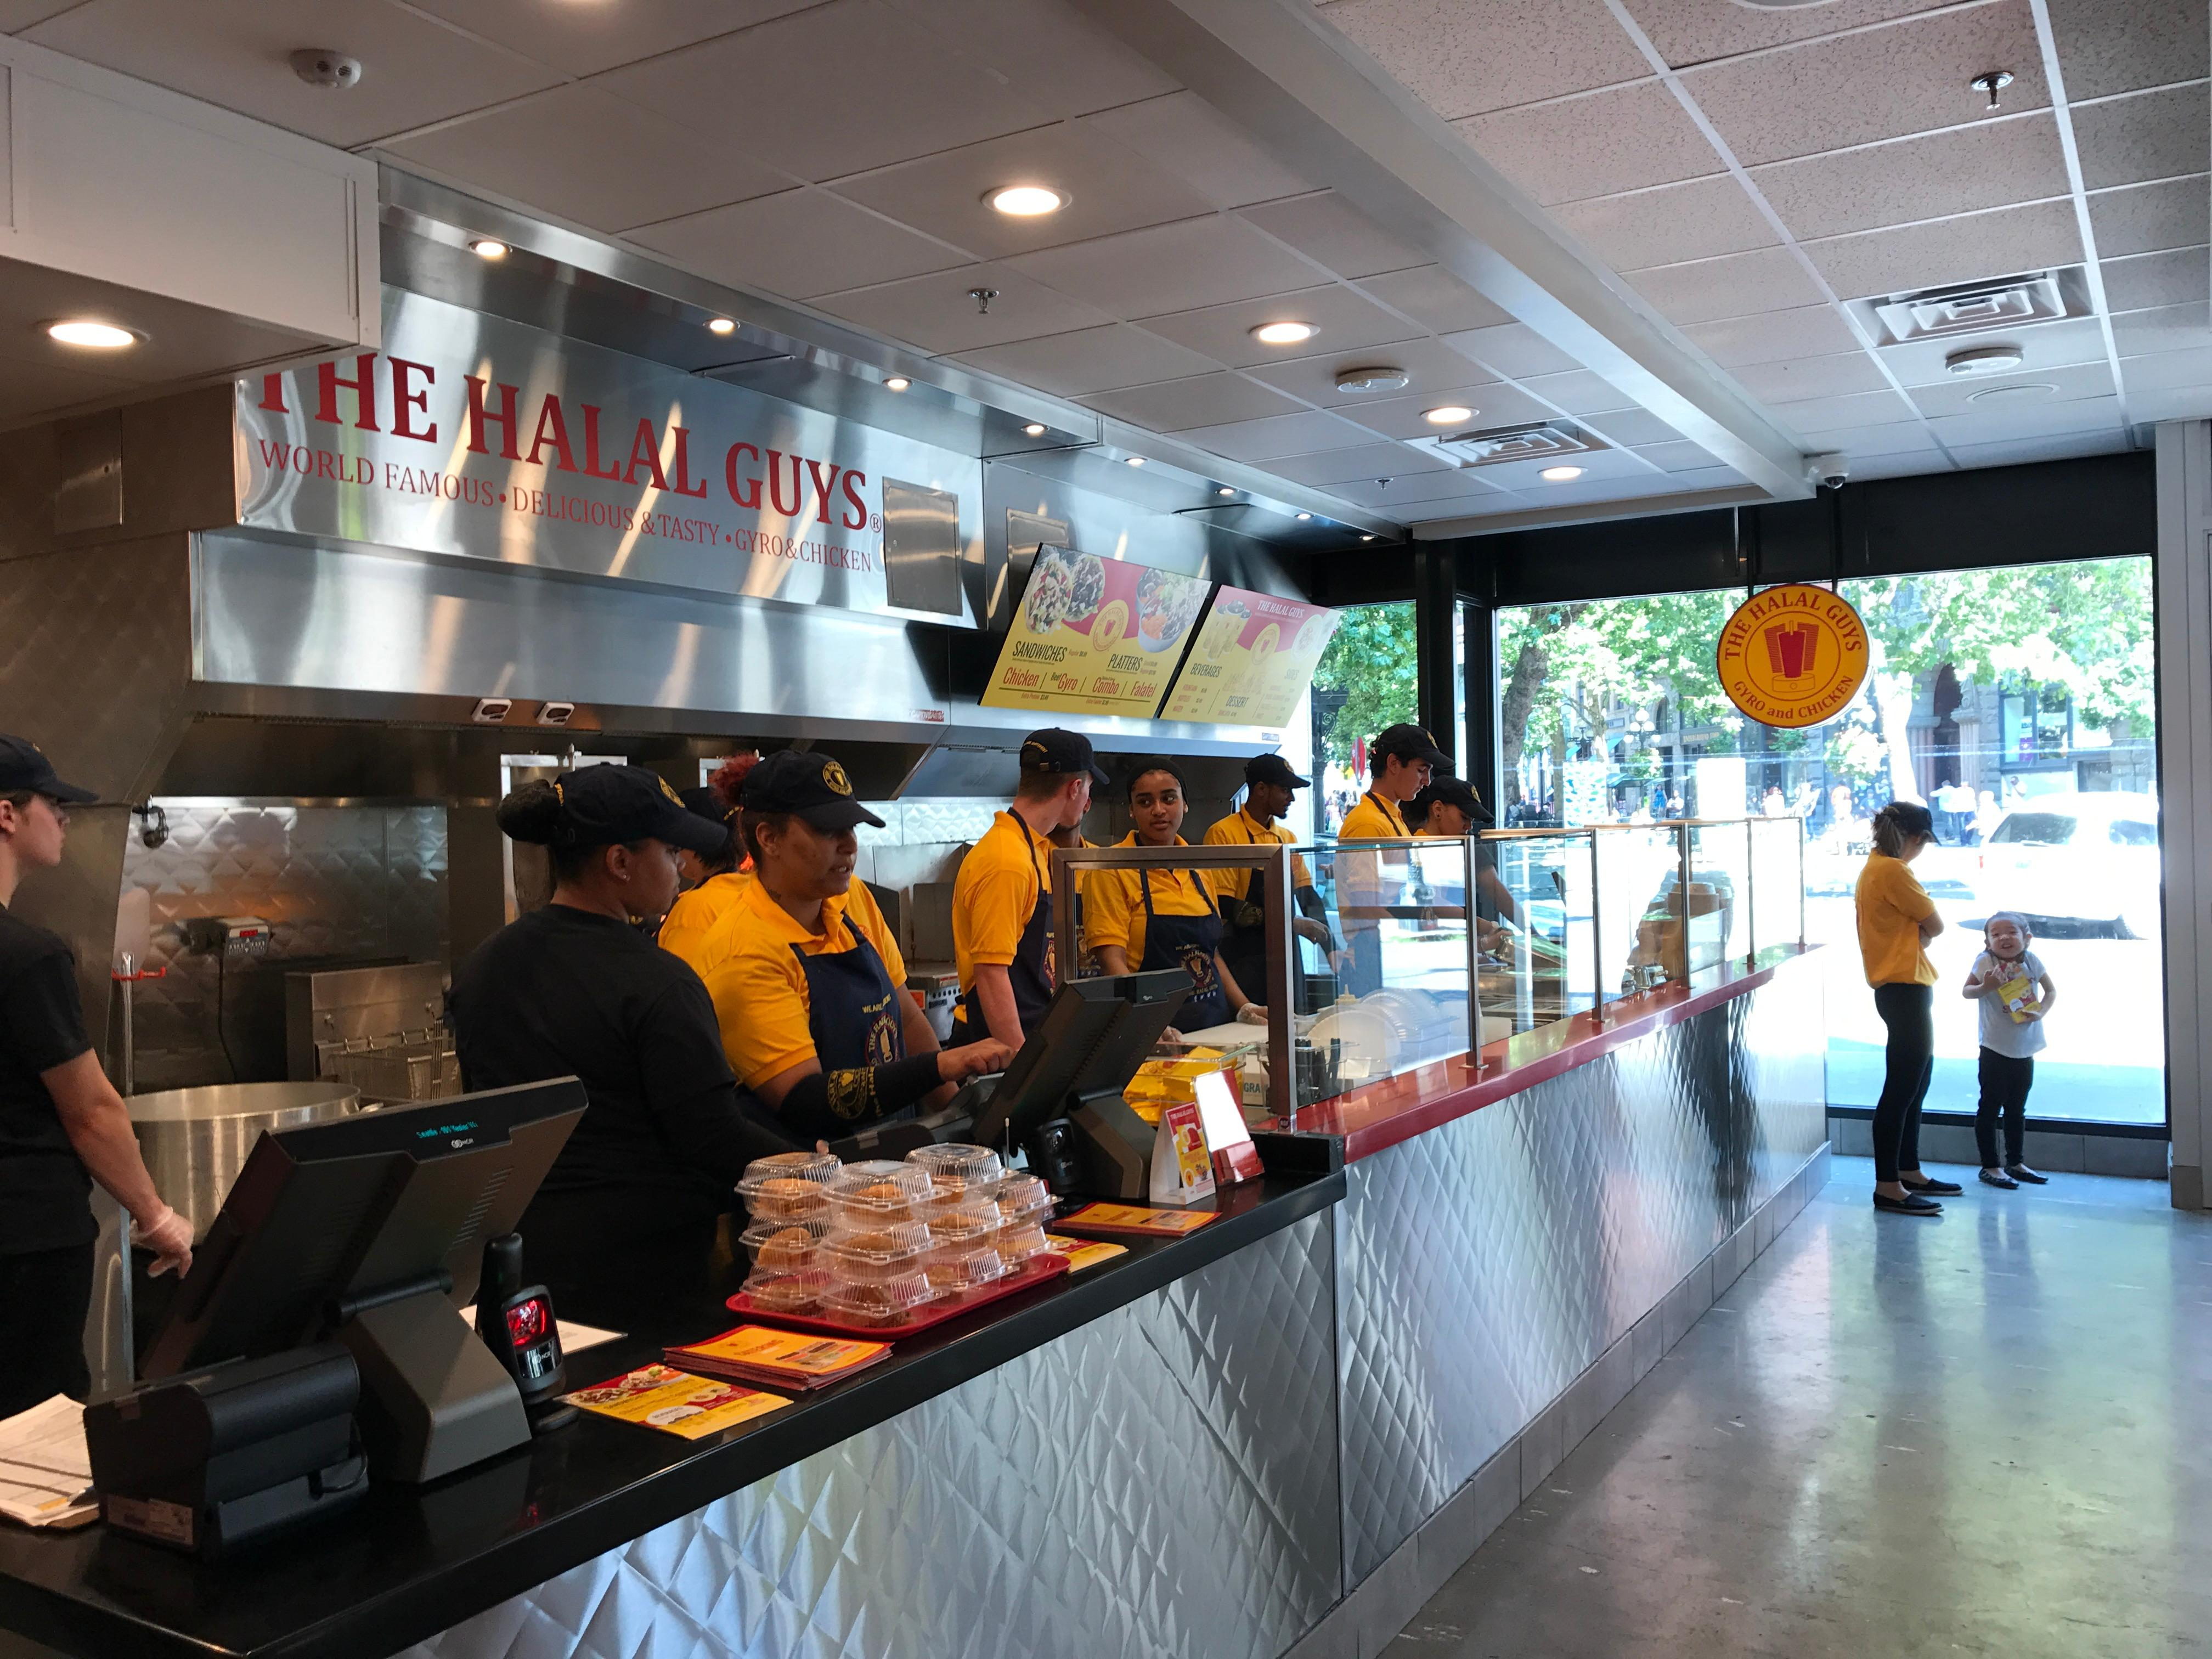 The setup at The Halal Guys' Pioneer Square location. (Image: Frank Guanco)